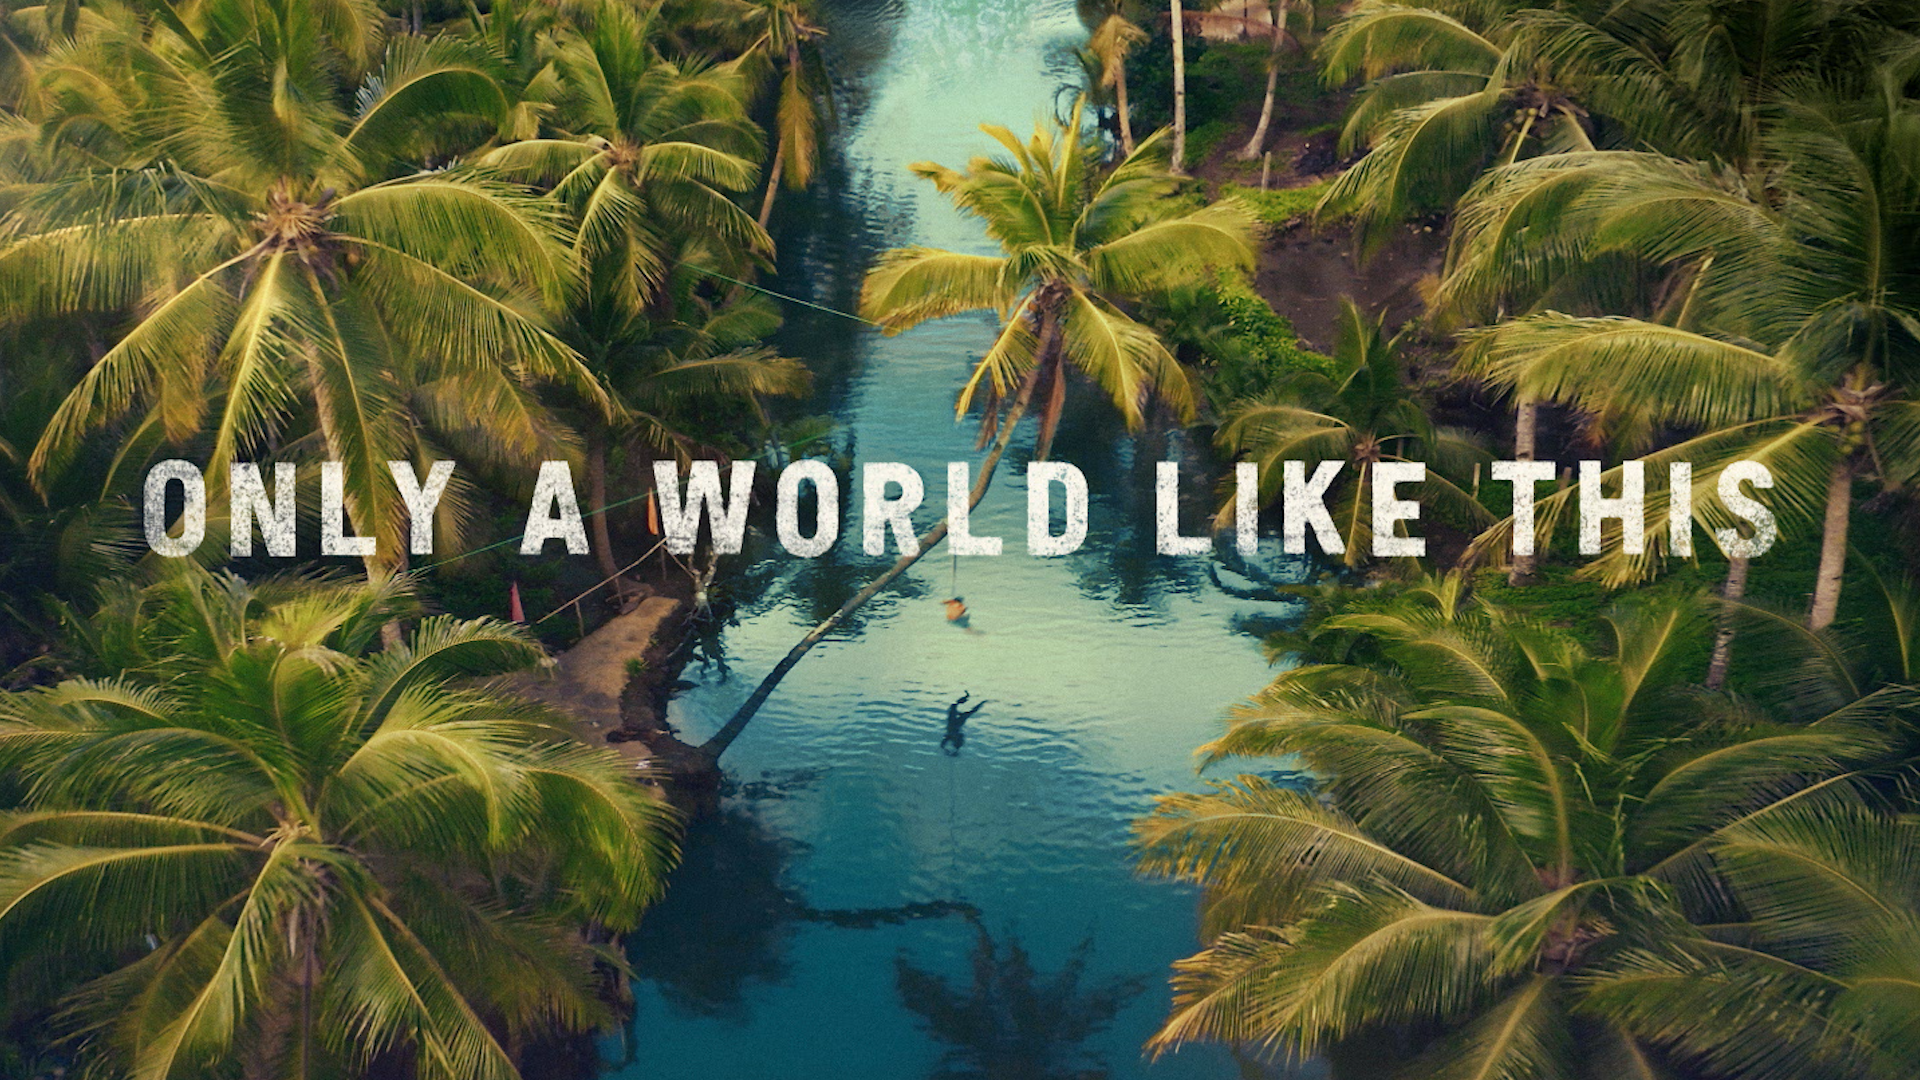 A screenshot from Corona's campaign to encourage consumers to rediscover the outdoors again.